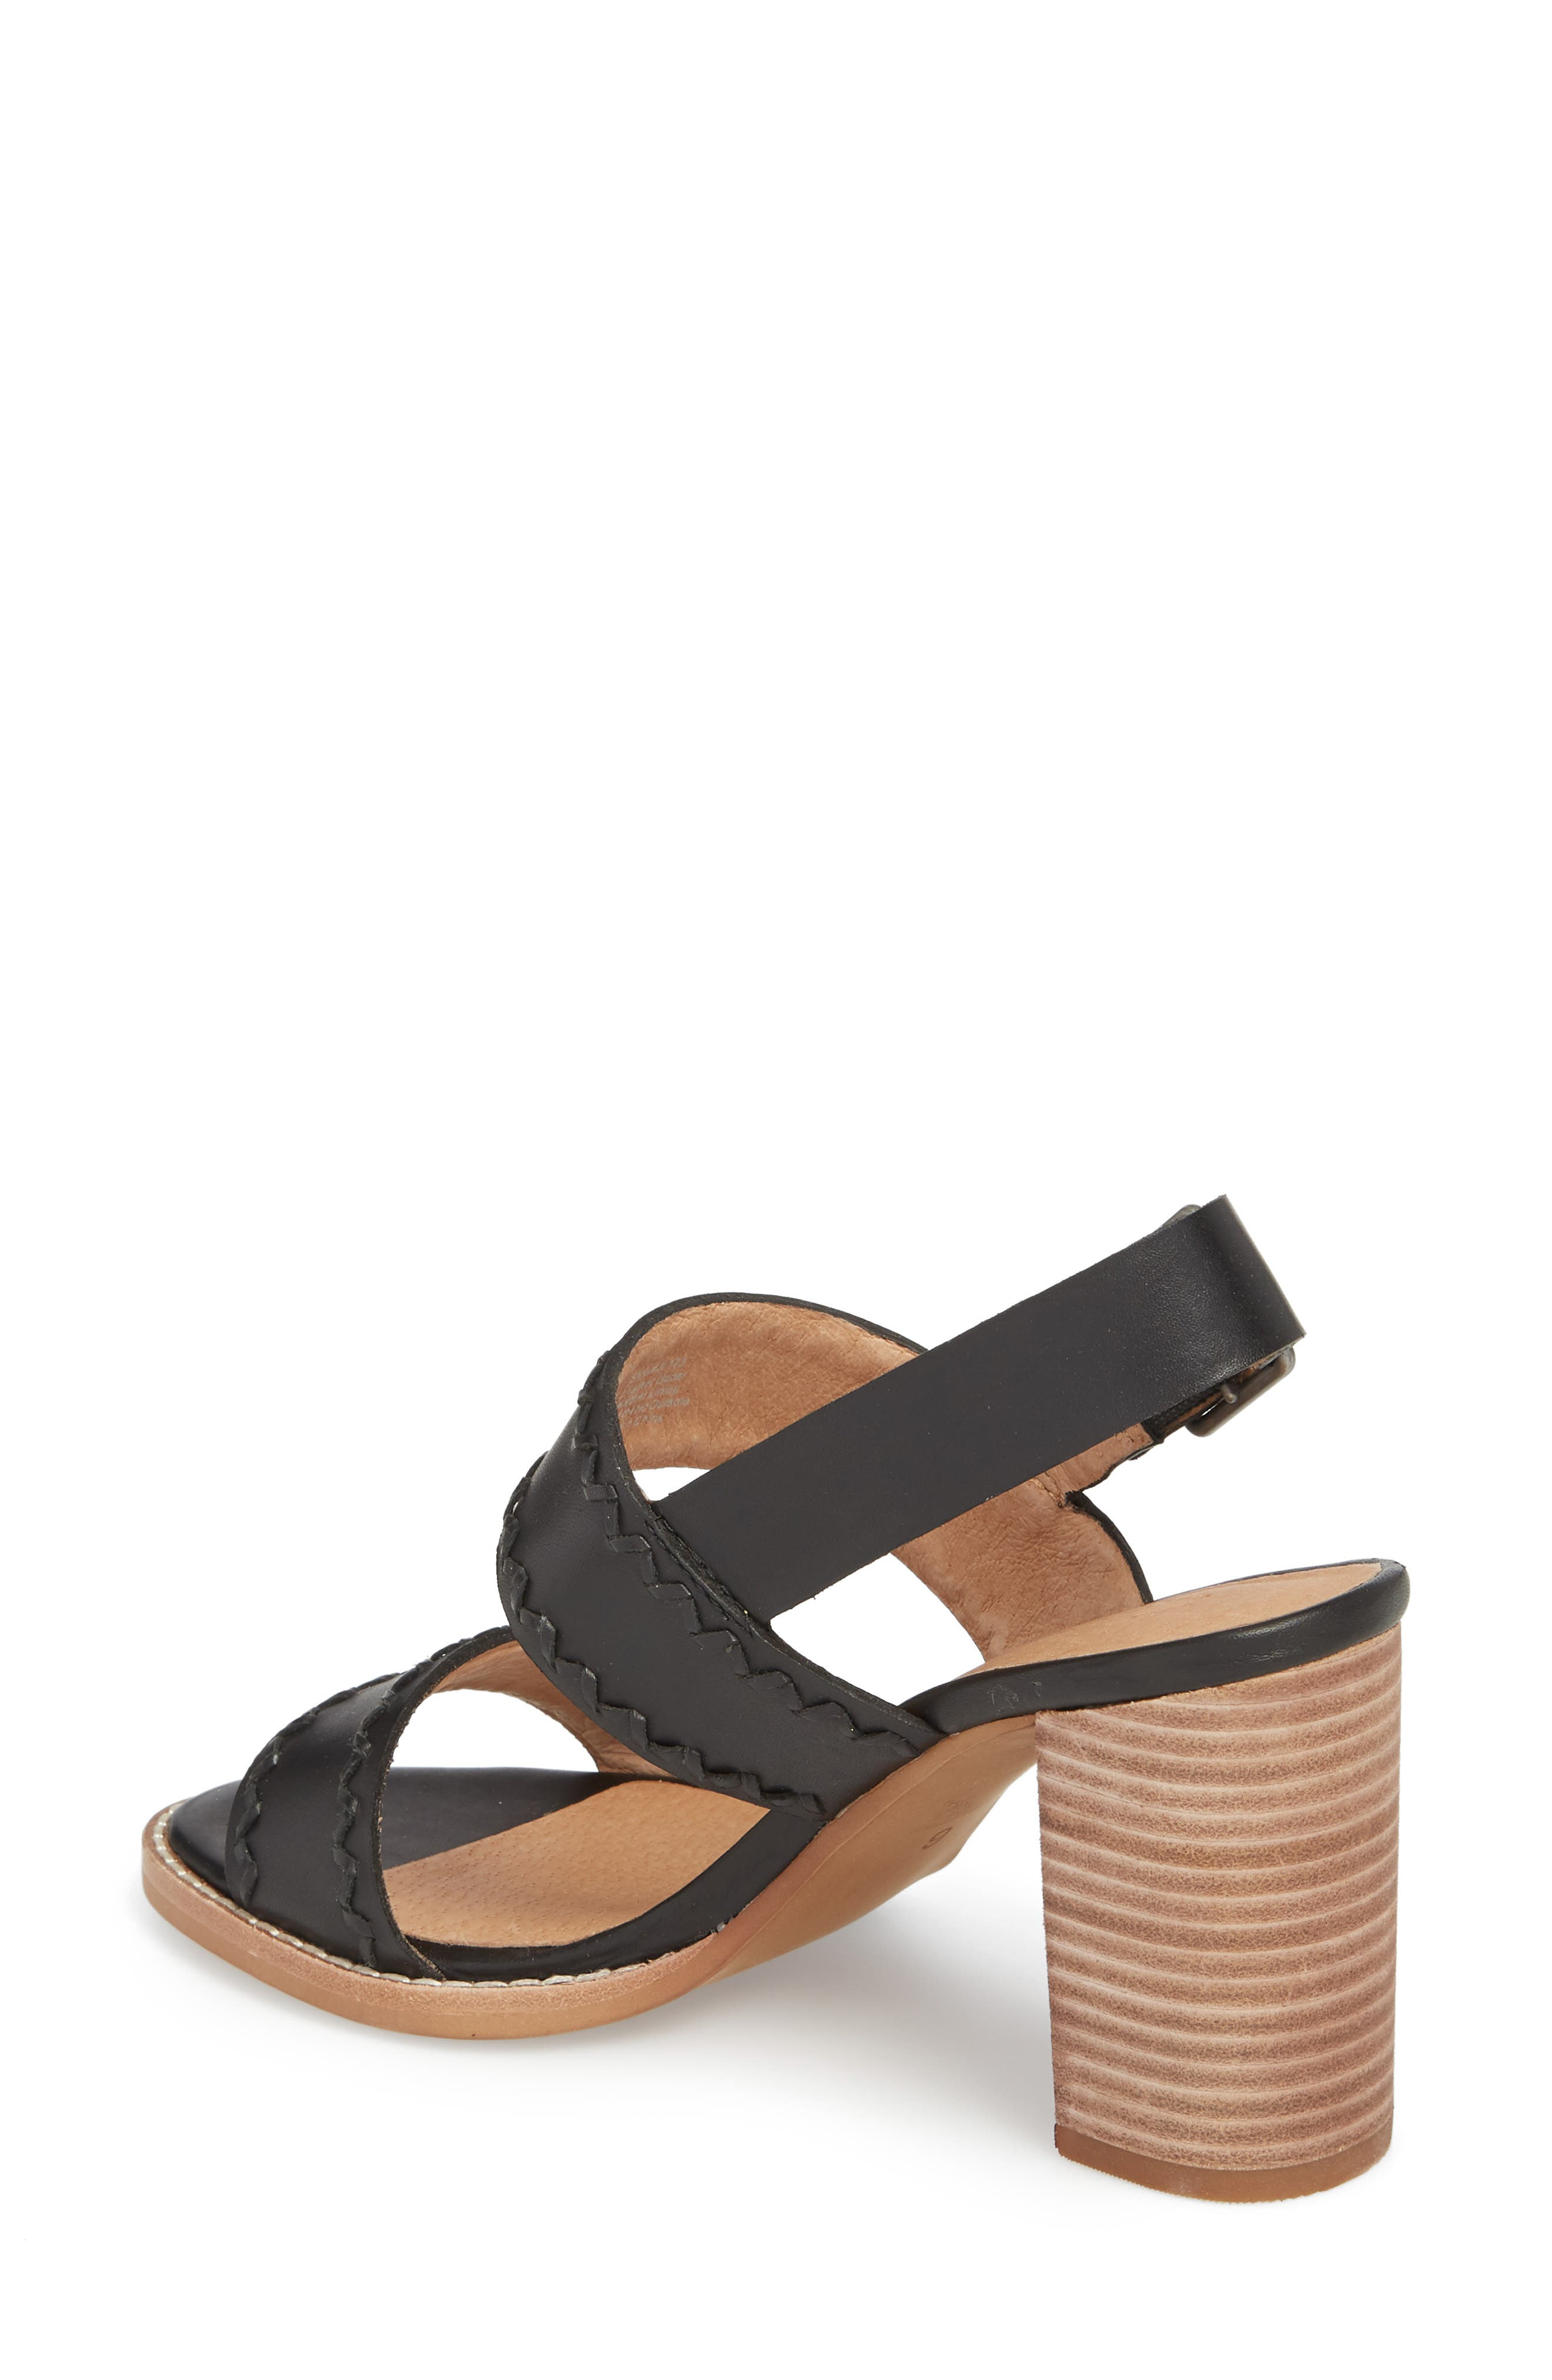 Giana Sandal,                             Alternate thumbnail 2, color,                             True Black Leather